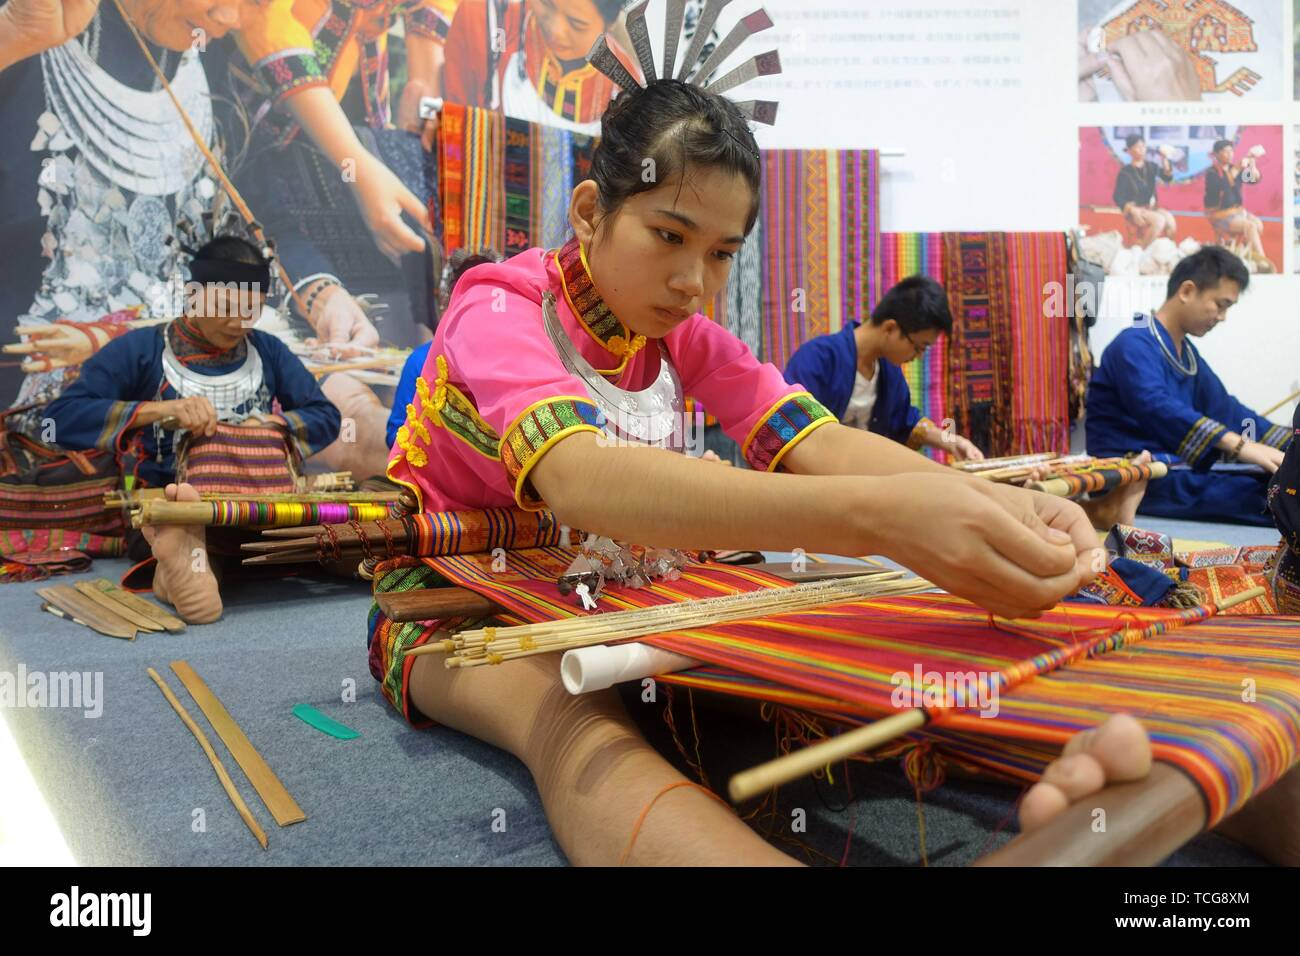 Guangzhou, China's Guangdong Province. 8th June, 2019. People display weaving of Li ethnic group on the Cultural and Natural Heritage Day at an exhibition center in Guangzhou, capital of south China's Guangdong Province, June 8, 2019. More than 3,200 activities have been staged across China to celebrate this year's Cultural and Natural Heritage Day, which falls on the second Saturday of every June. Credit: Xu Jianmei/Xinhua/Alamy Live News - Stock Image